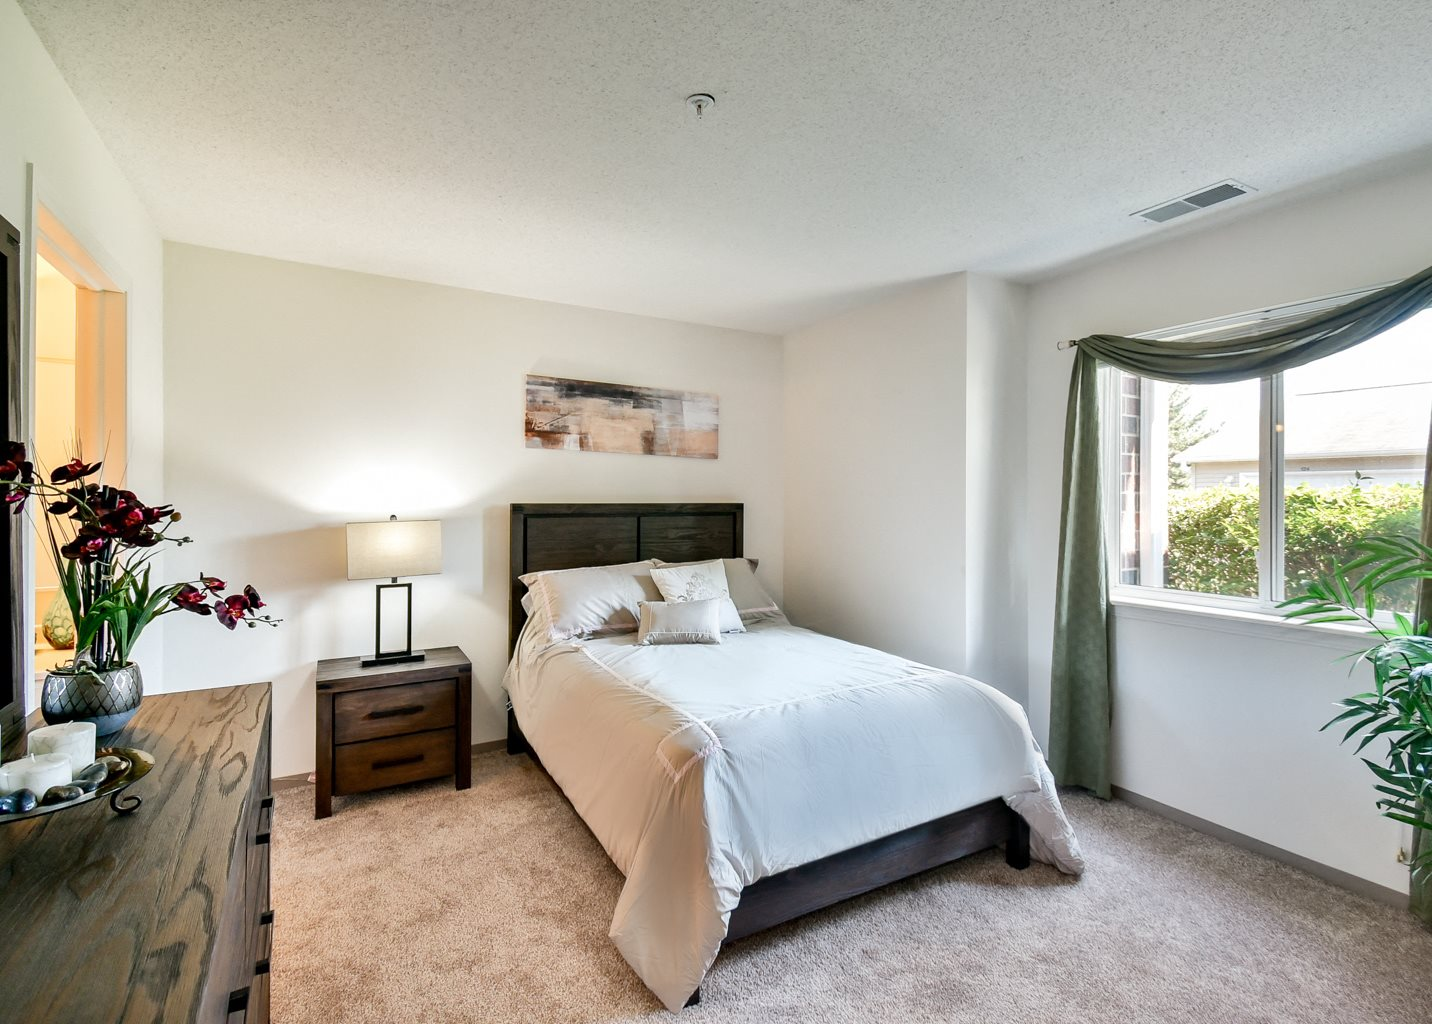 Northgate Apartments | Apartments in Waukegan, IL